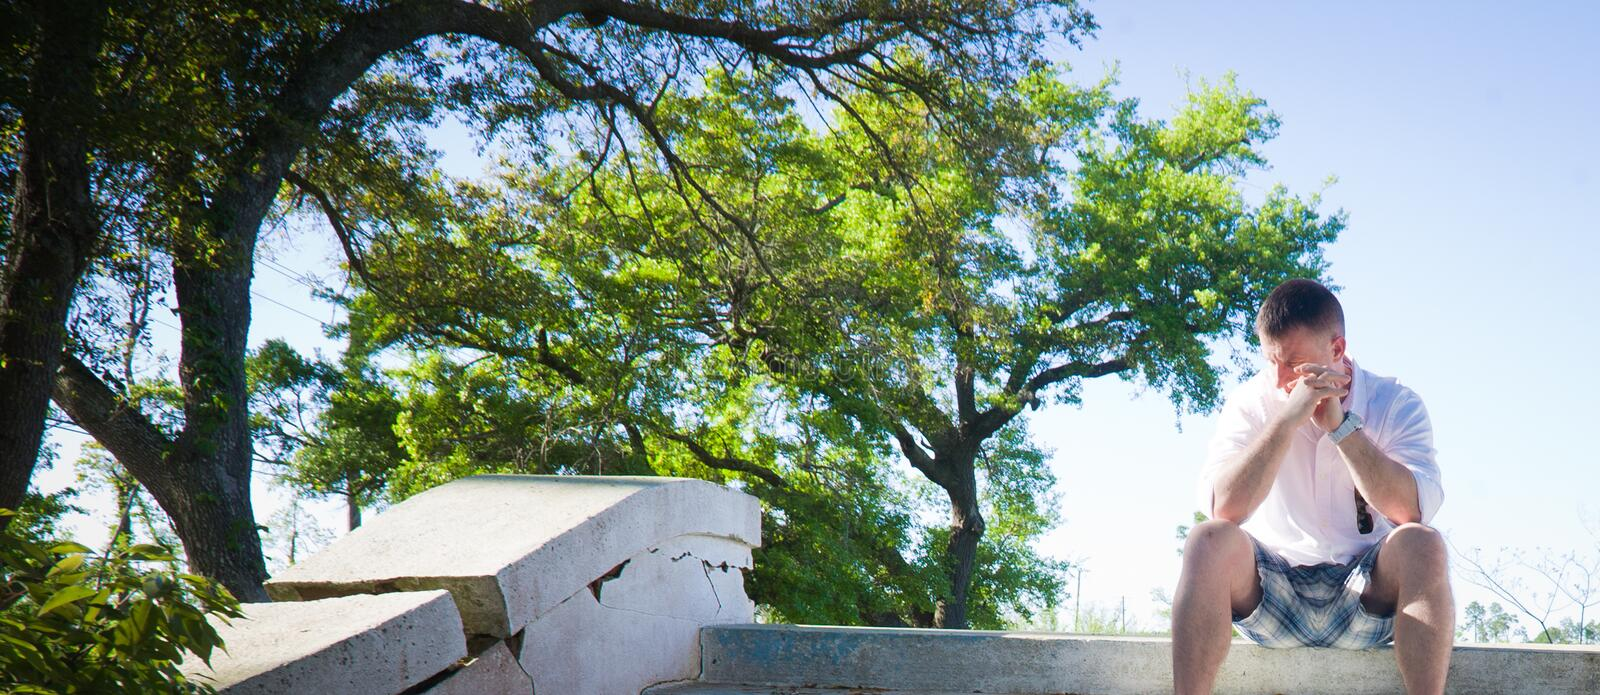 A Man Alone. A man sitting alone on crumbling steps with oak trees and blue sky in the background stock photo